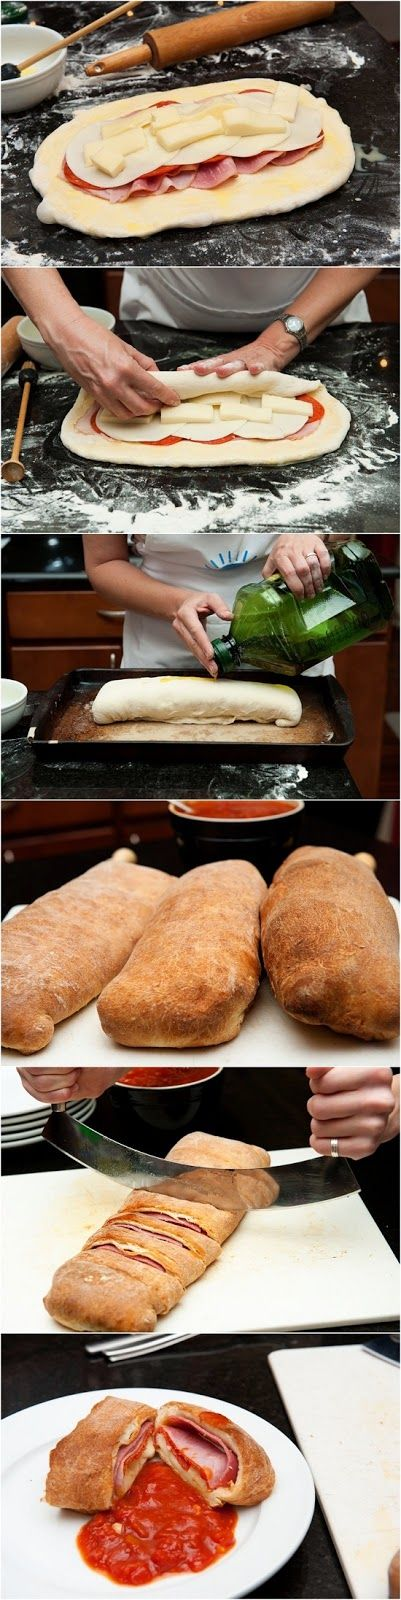 How to make Stromboli - great for parties!